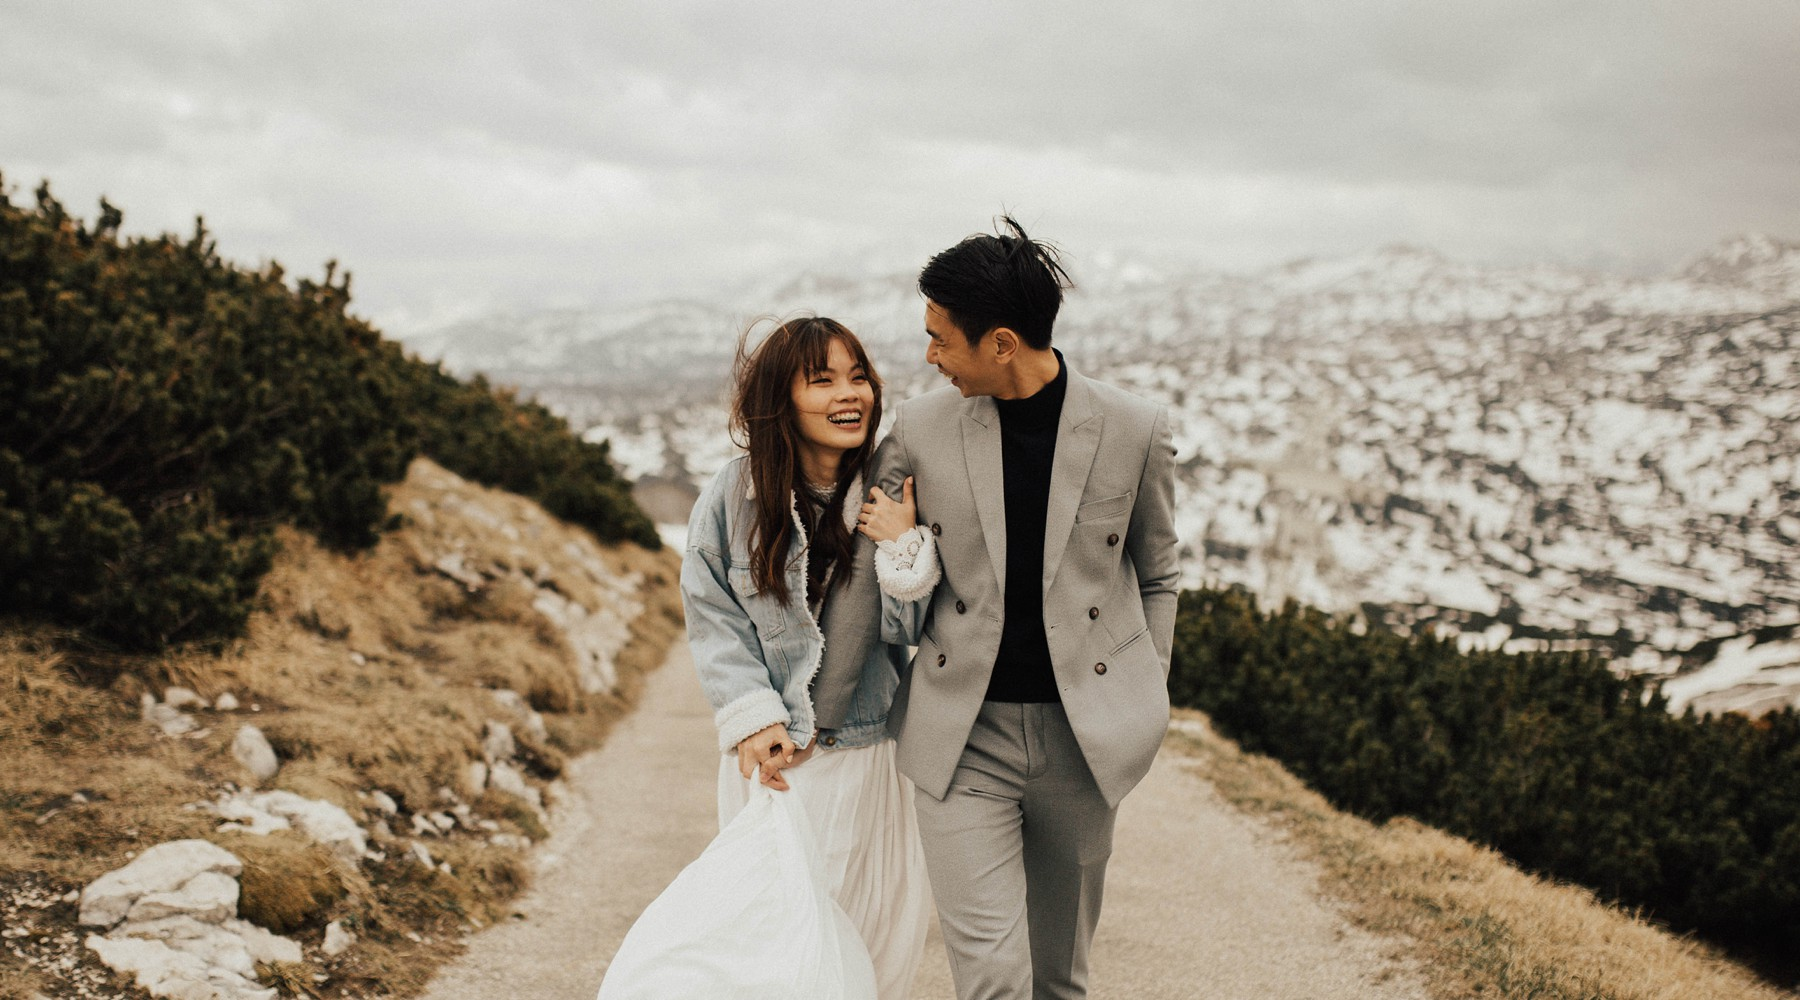 Engagement Photos in Hallstatt on Dachstein Krippenstein